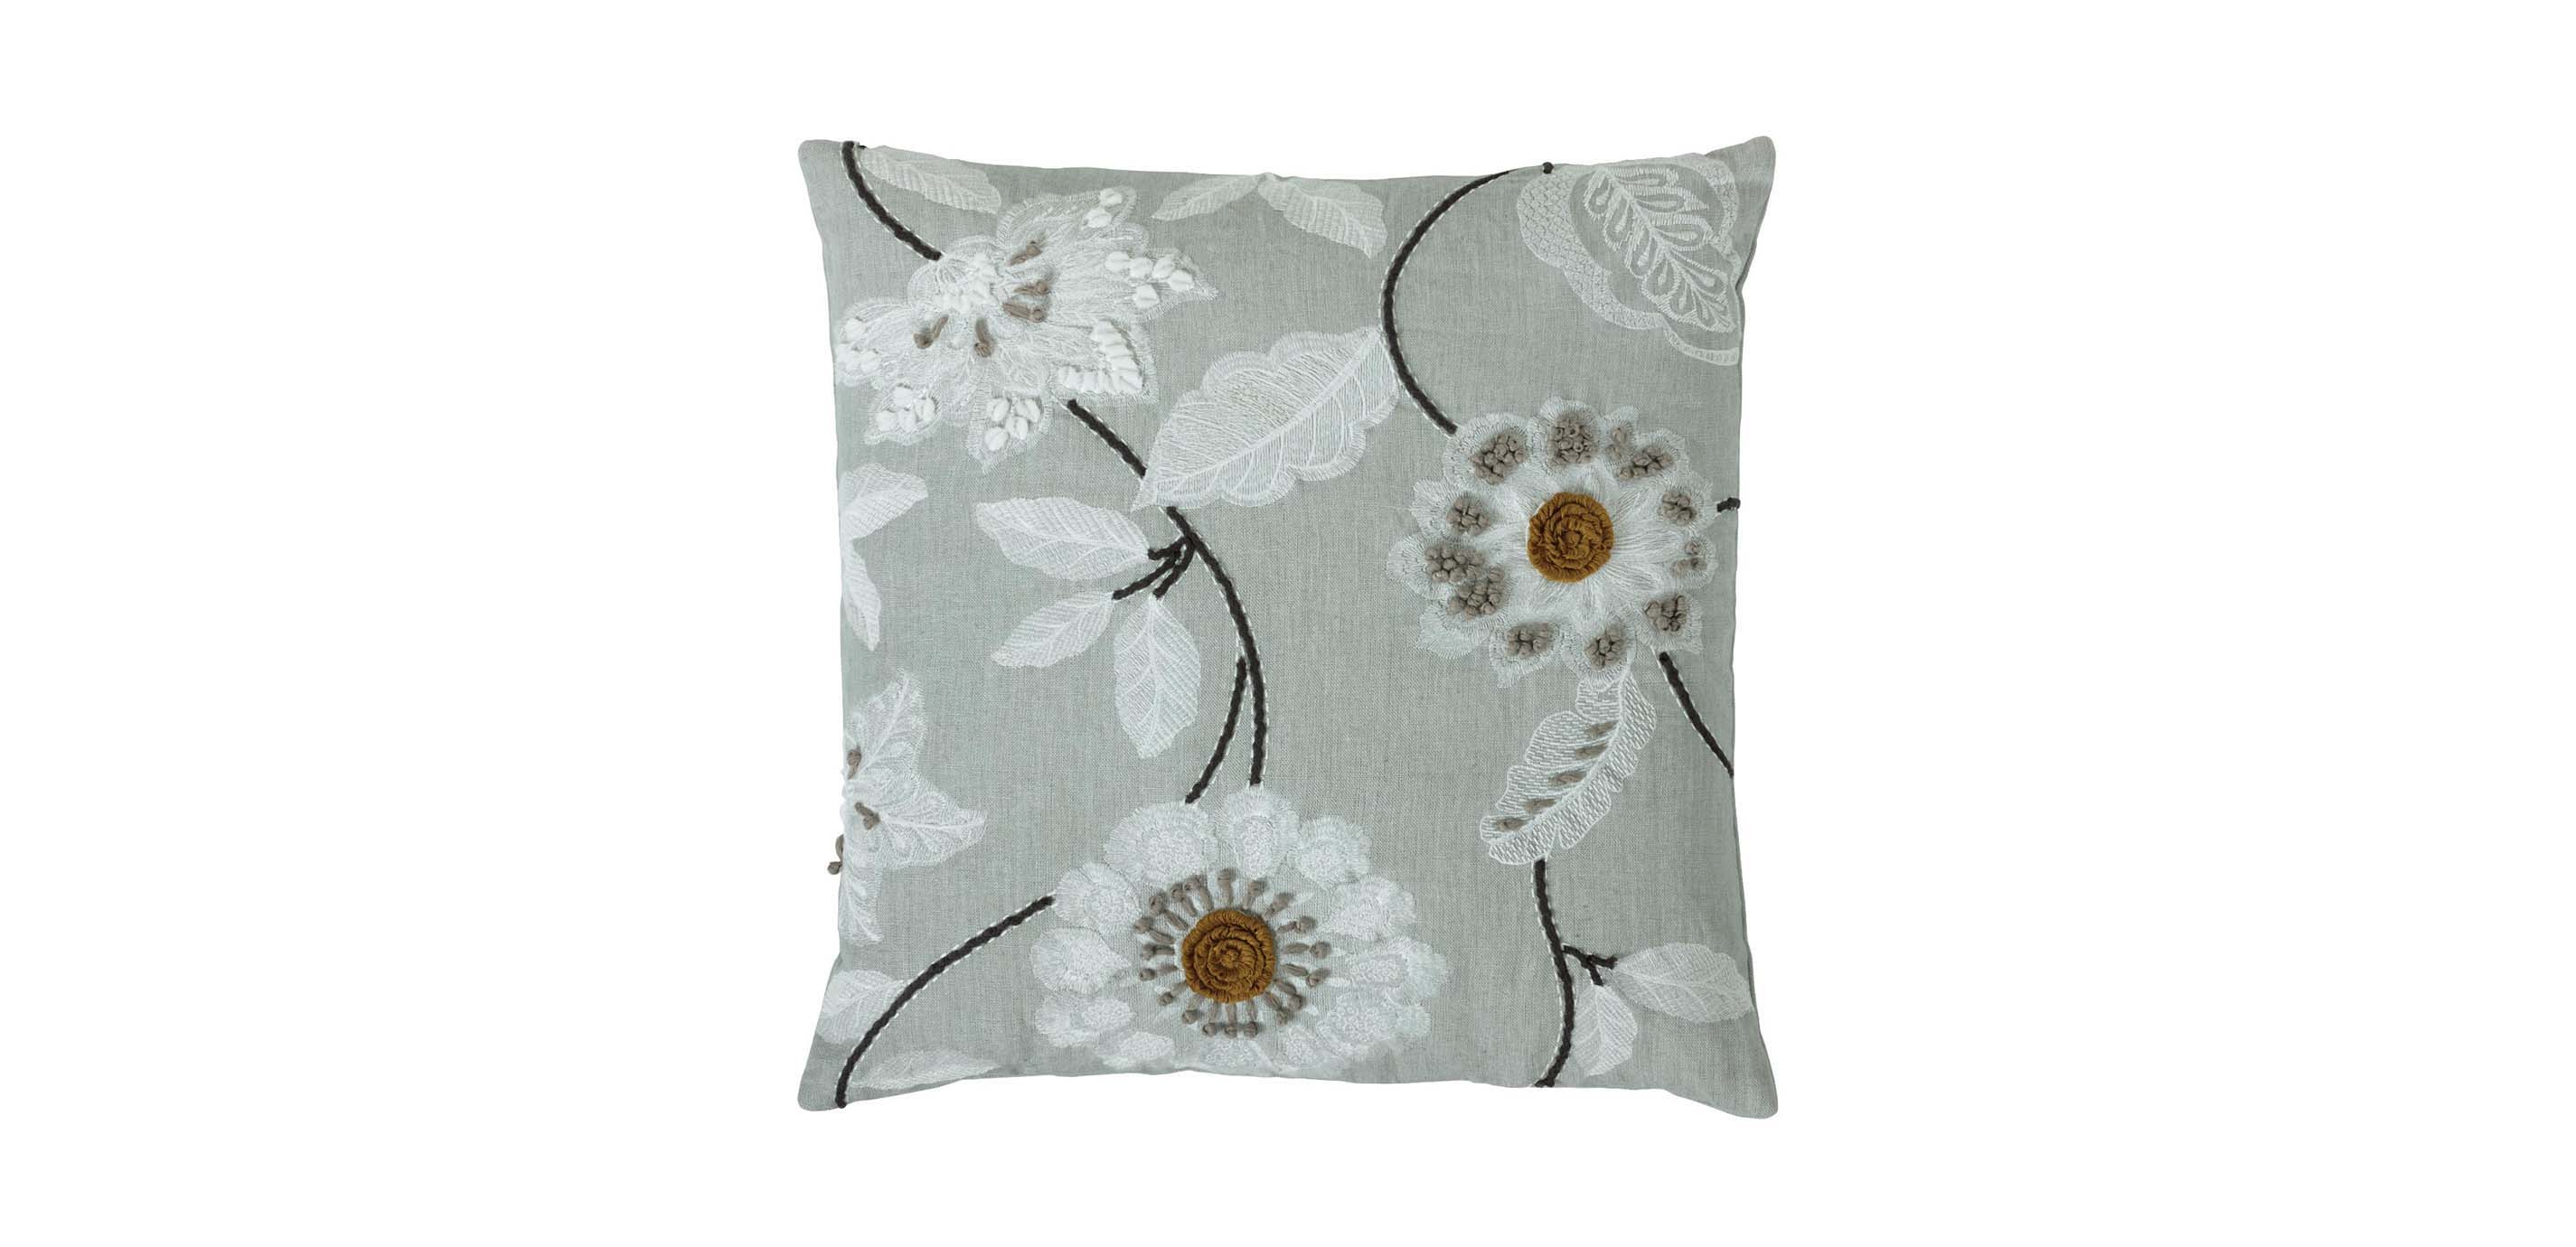 Embroidered Floral Throw Pillows Ethan Allen Throw Pillows Ethan Allen